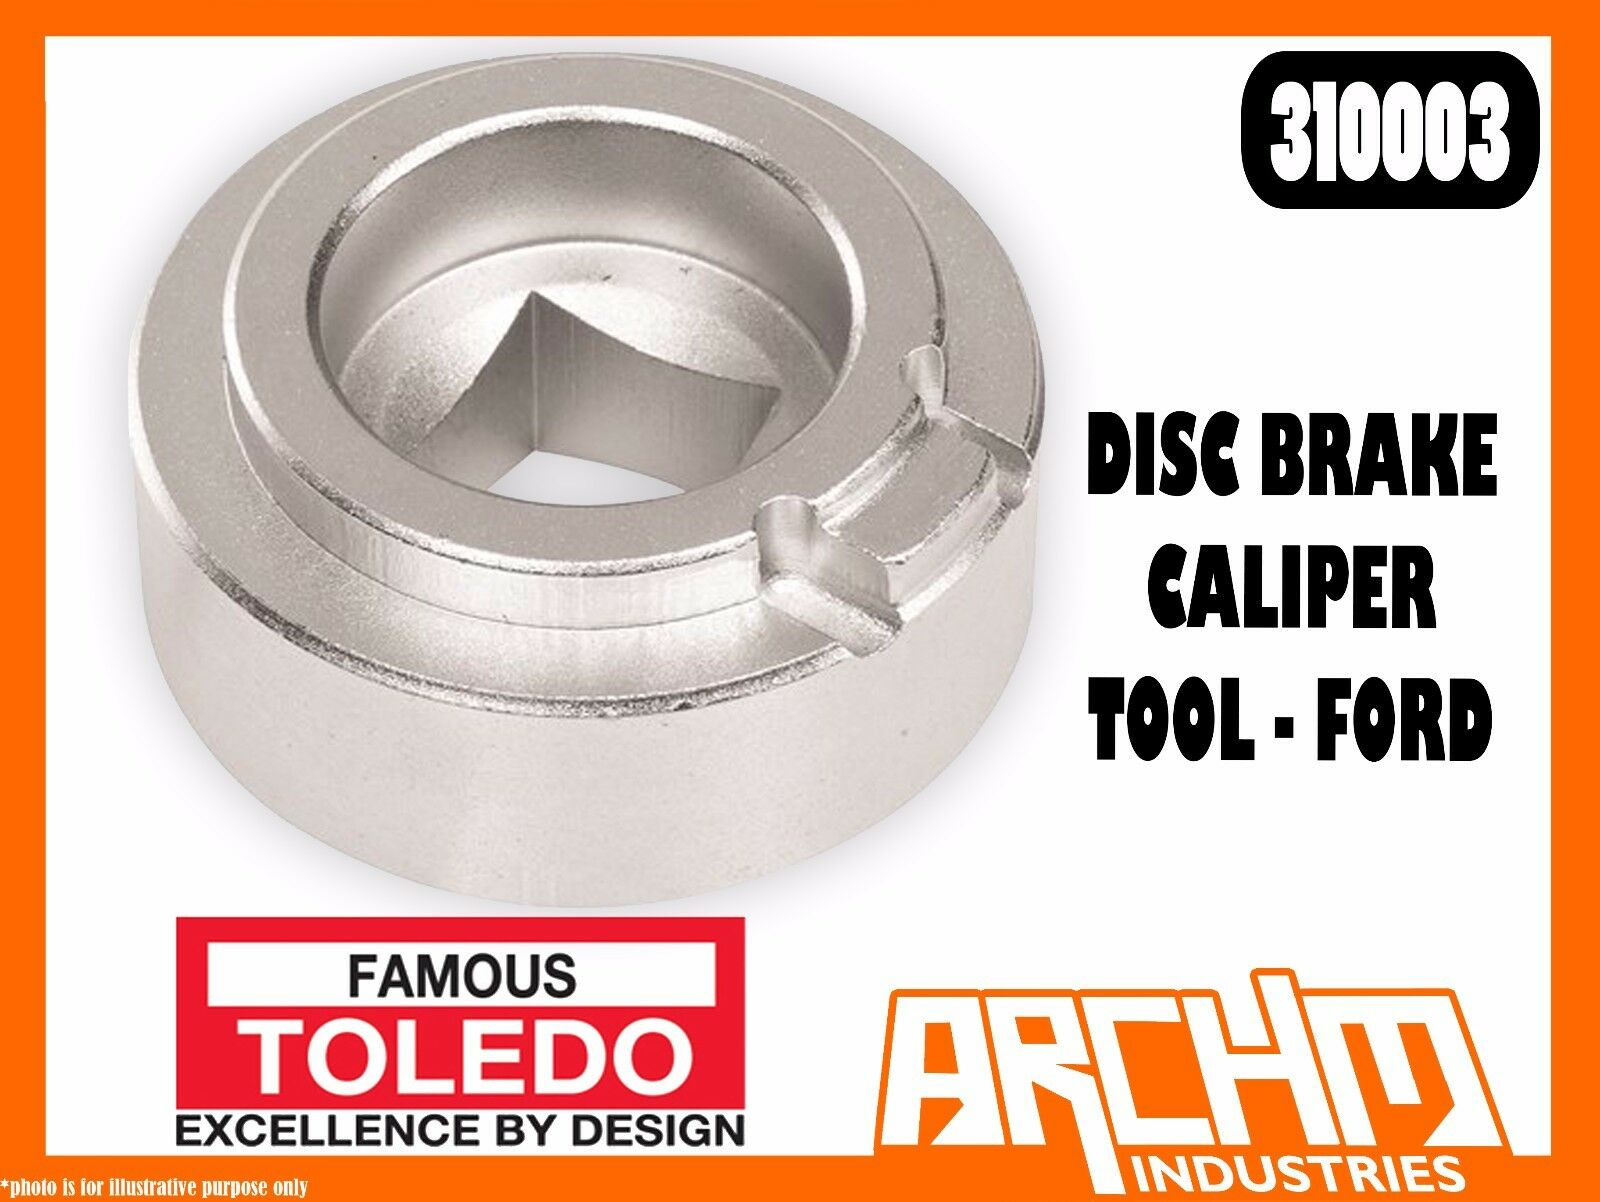 TOLEDO 310003 - DISC BRAKE CALIPER TOOL FORD - REMOVAL INSTALL RESTING POSITION